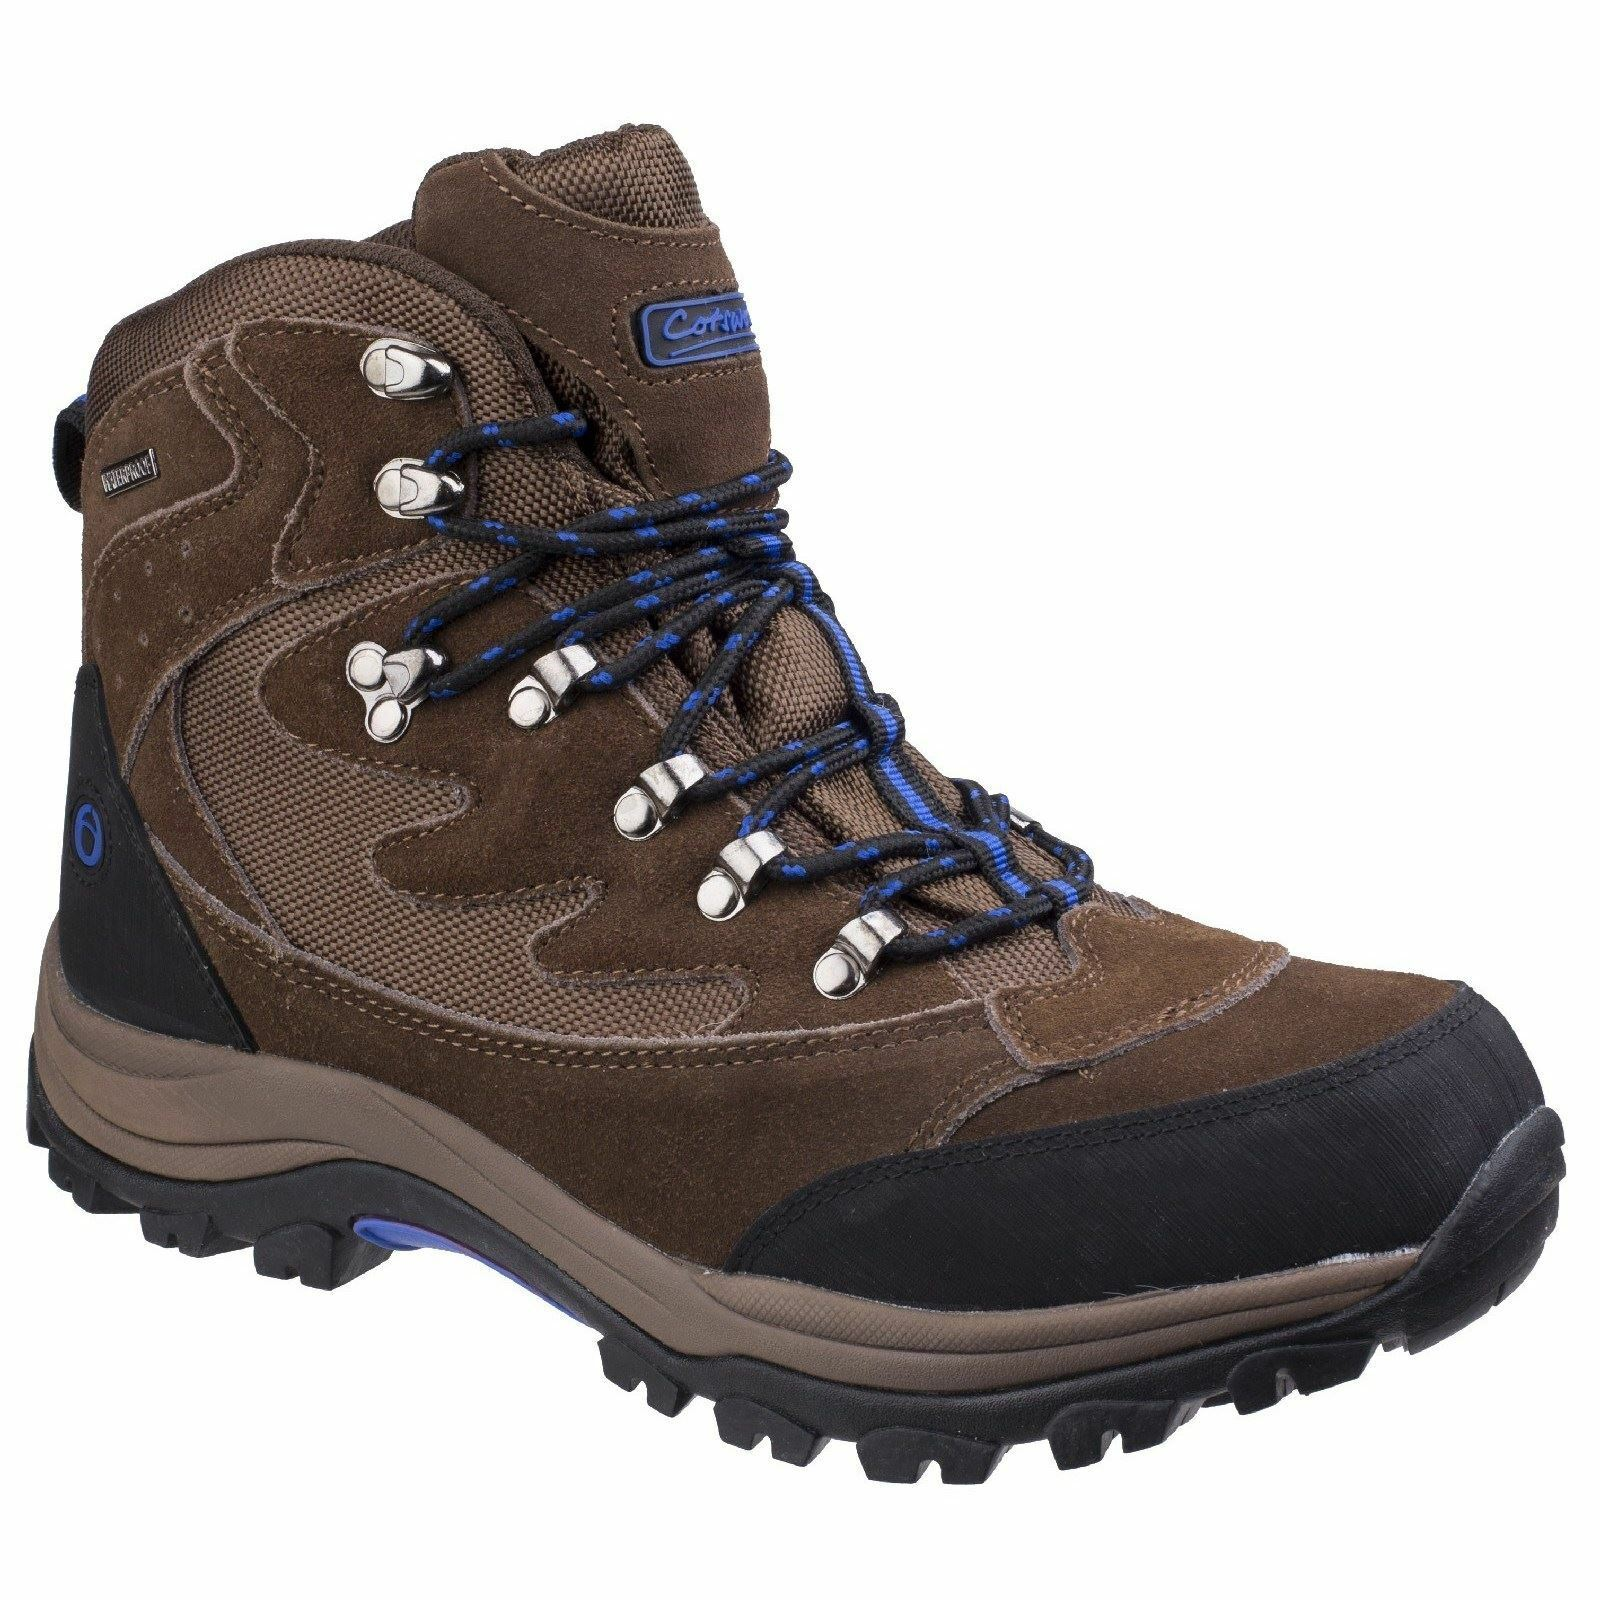 Cotswold Oxerton braun Mens Hiking Stiefel Leather Suede